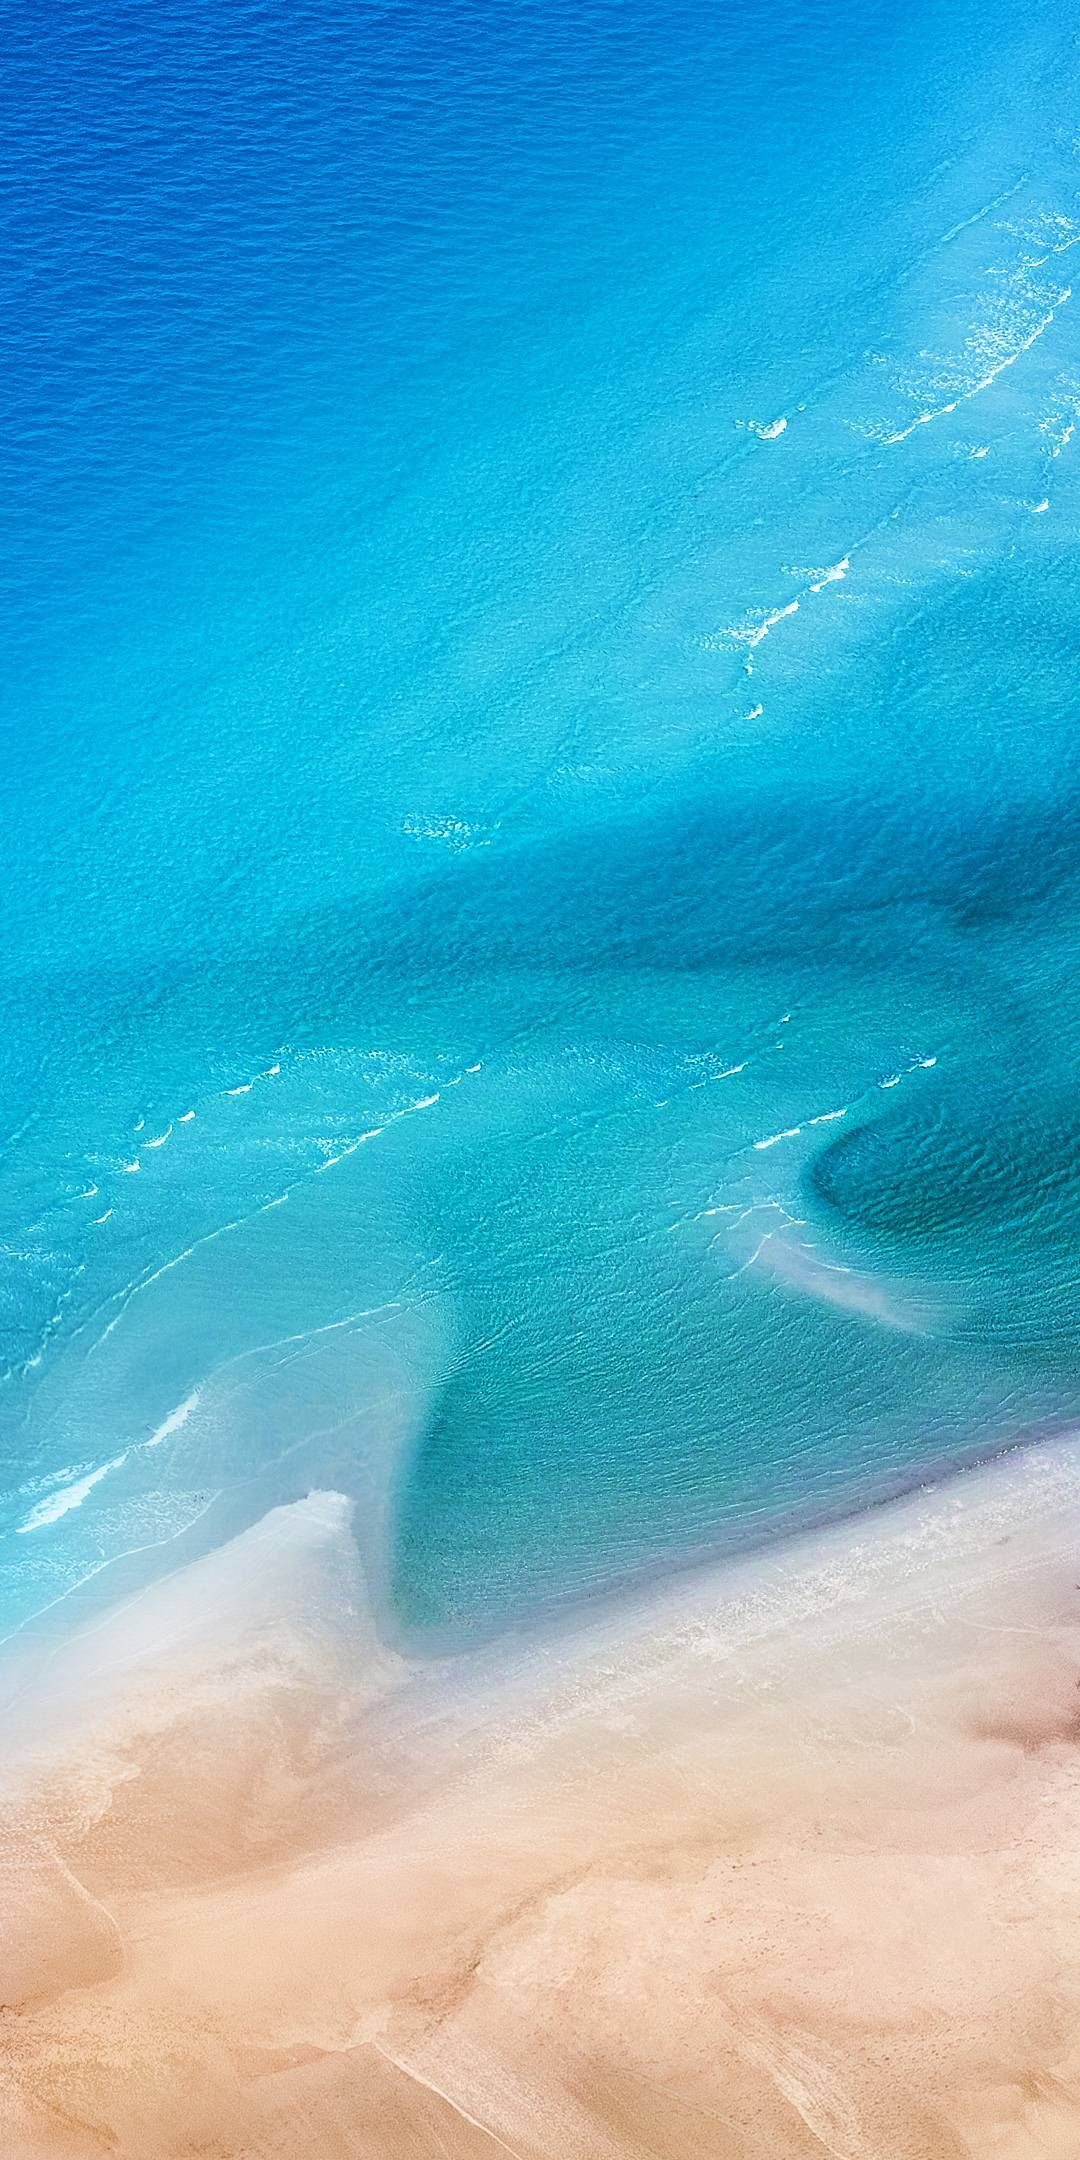 Bahamas Beach Hd Iphone 11 Wallpapers Top Free Bahamas Beach Hd Iphone 11 Backgrounds Wallpaperaccess